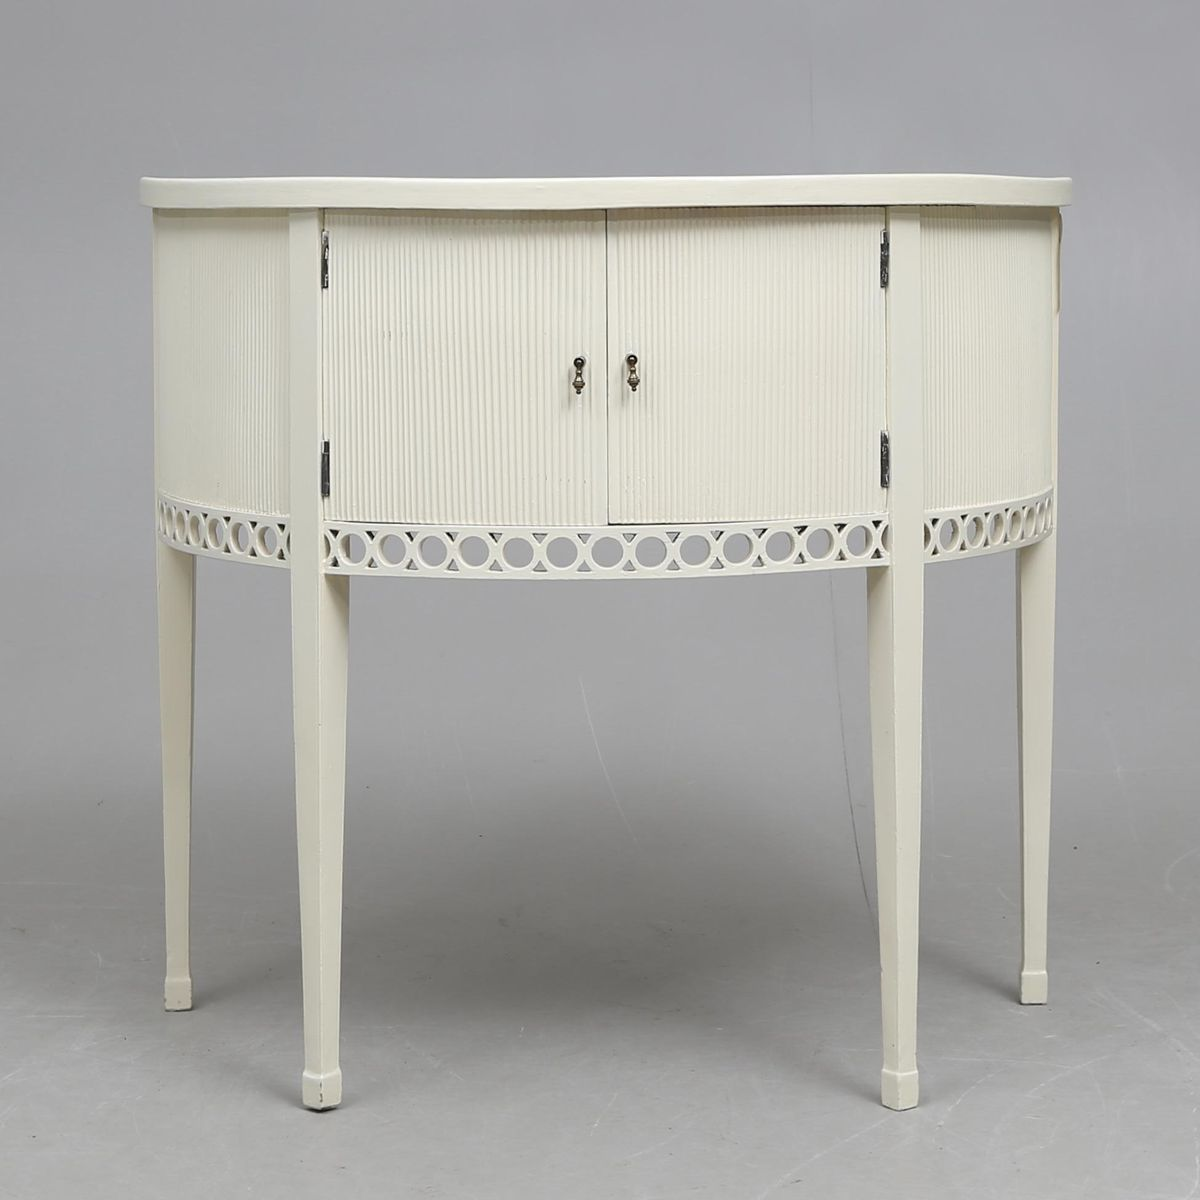 Antique gustavian half moon console table for sale at pamono - Console vintage scandinave ...